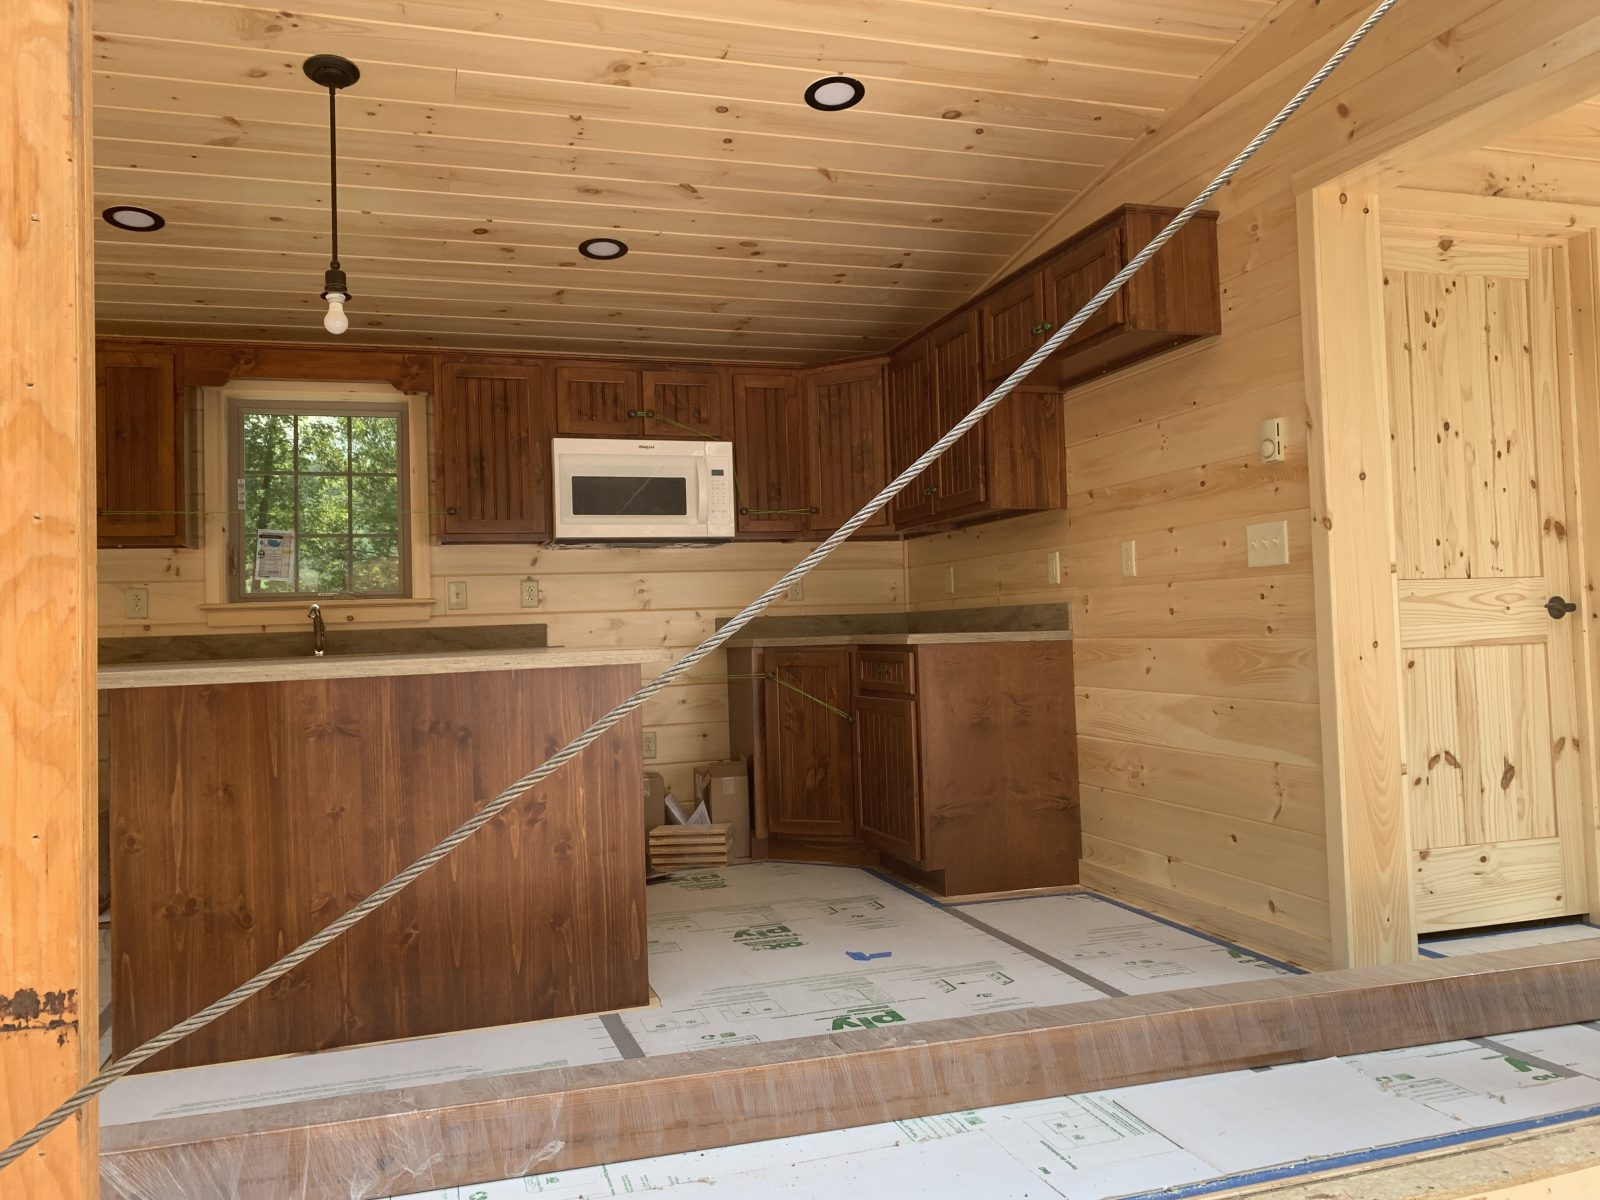 sneak peek at the unassembled pieces of a new prefab log cabin in parson west virginia